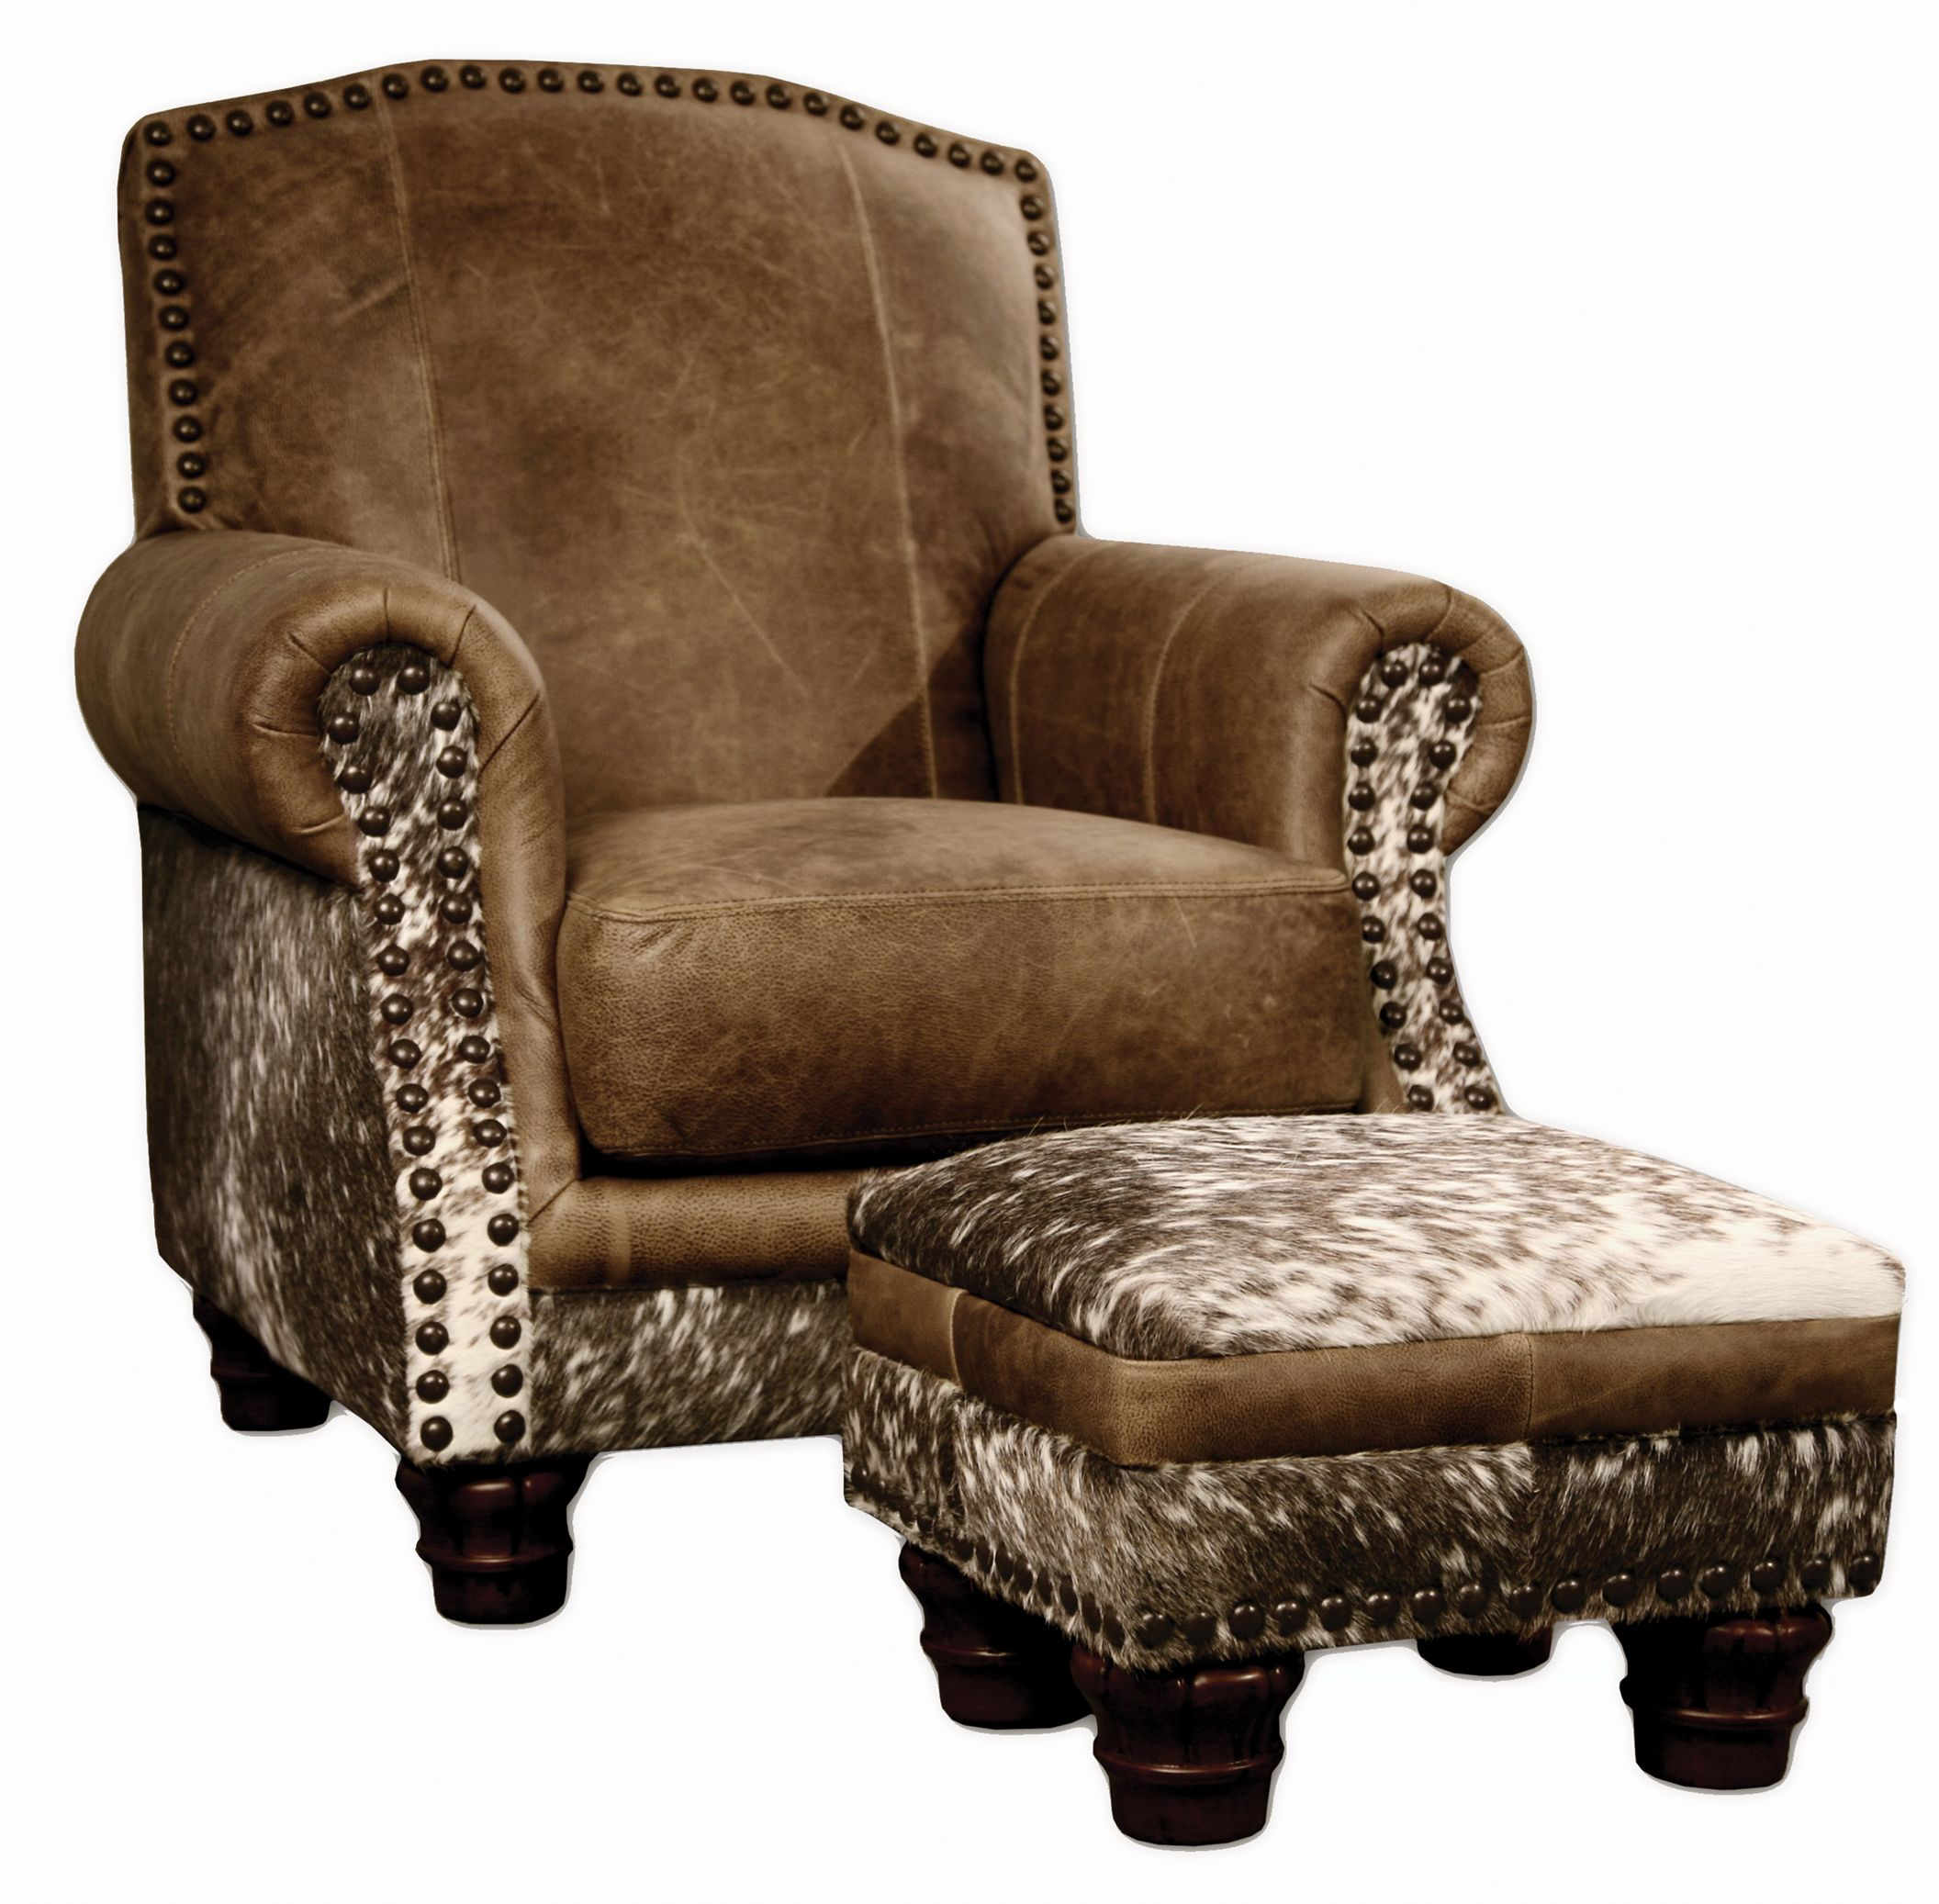 HairOnHide leather chair & ottoman (and somwhere a vegan